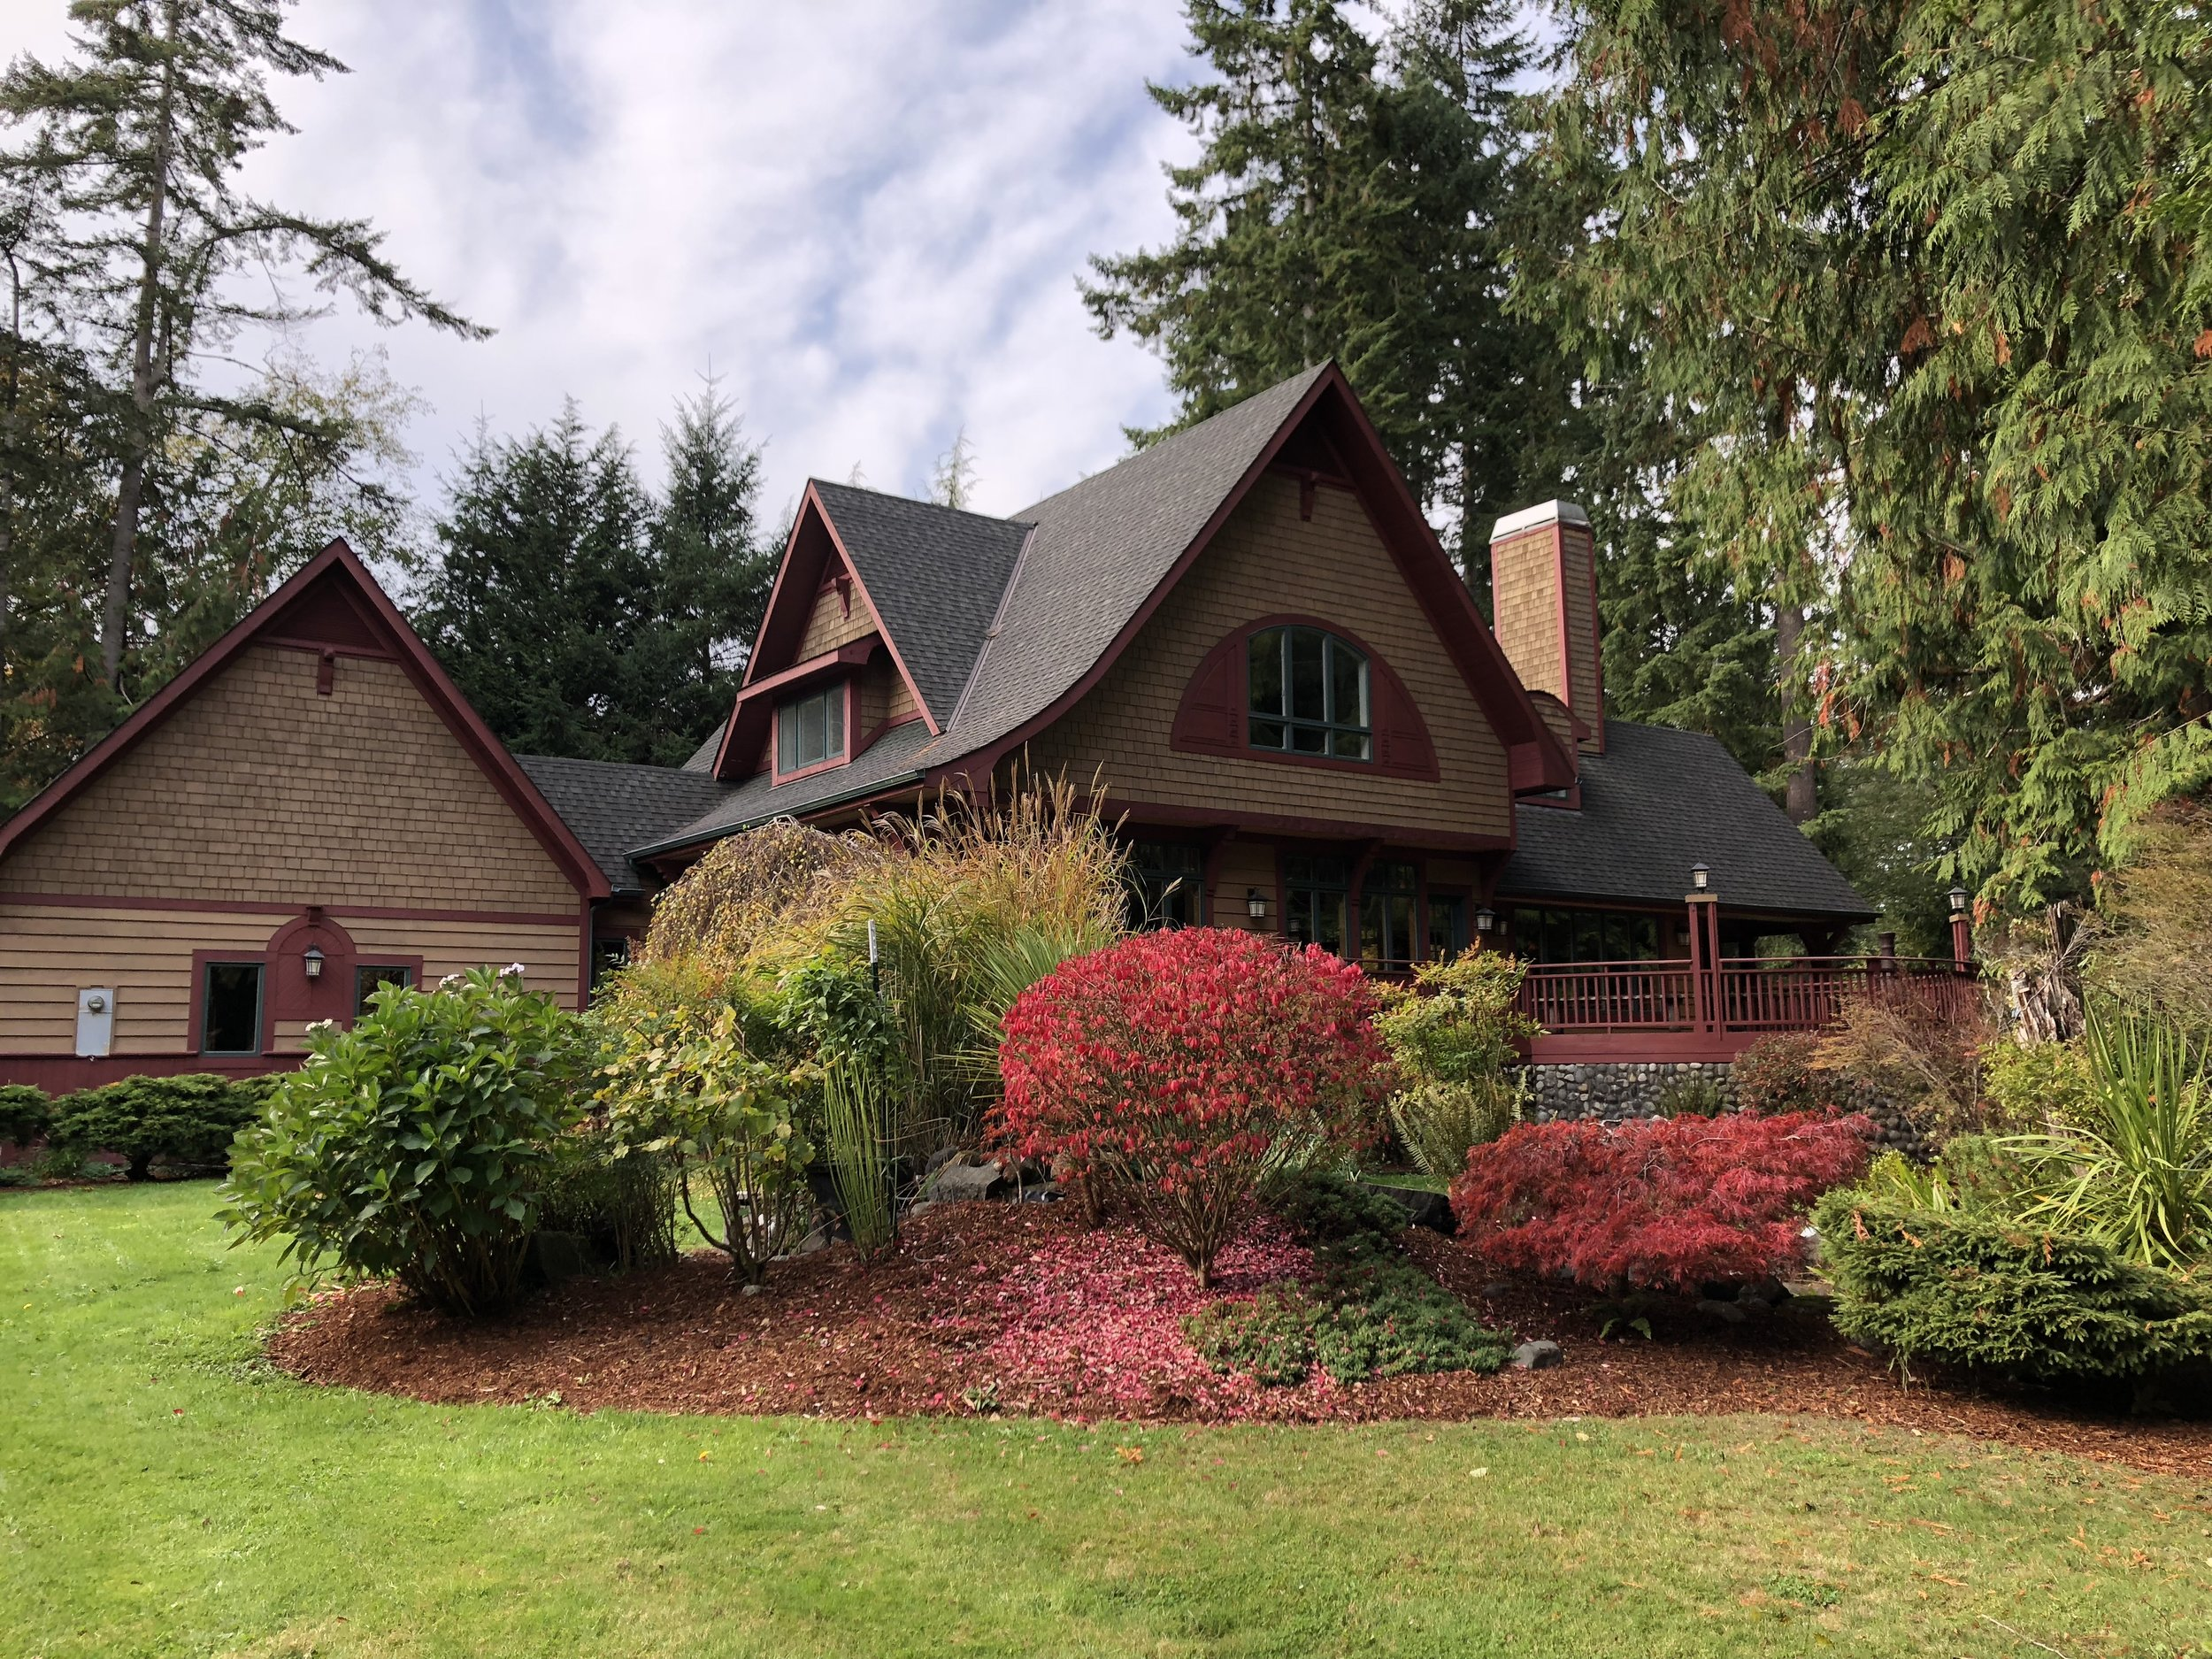 Purchase Price: $1,150,000 | 14061 Ellingsen Rd.